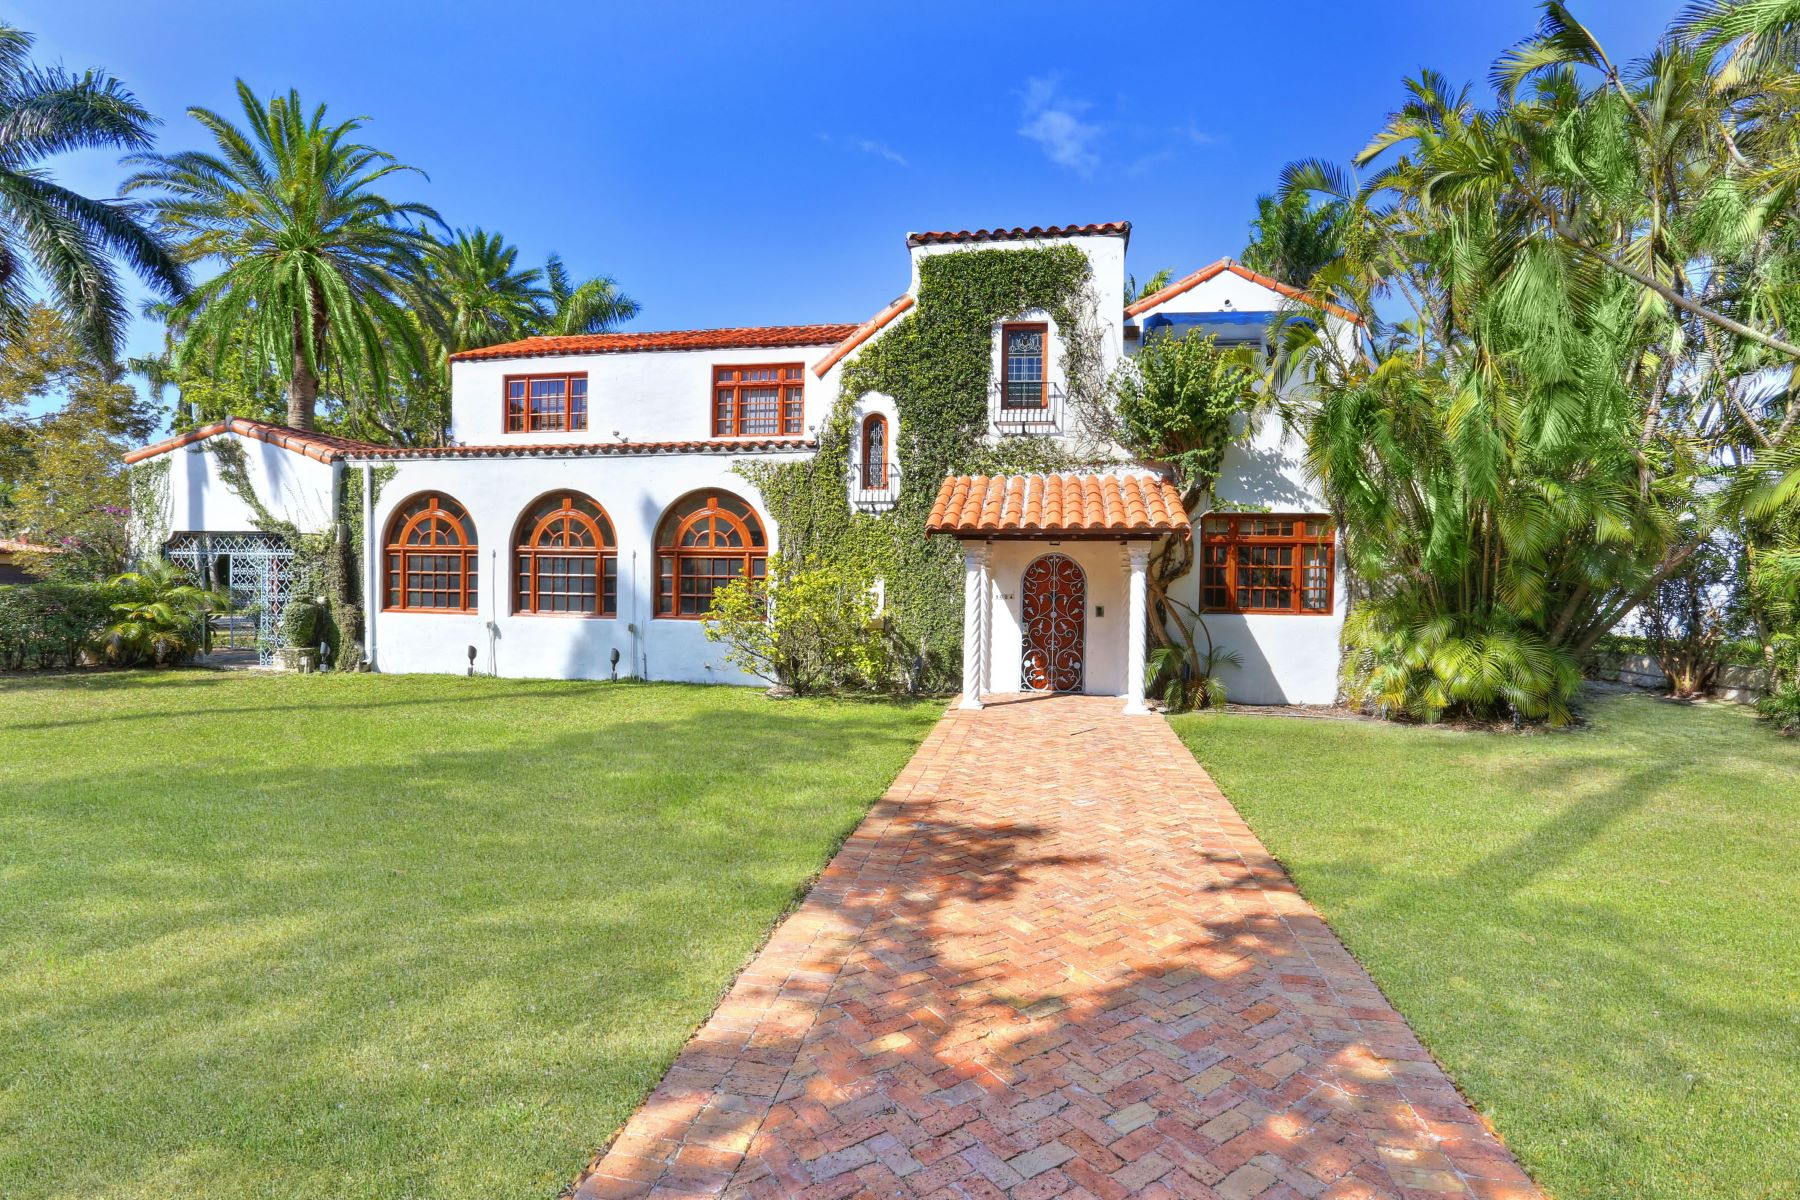 Single Family Home for Sale at 1624 Granada Blvd Coral Gables, Florida, 33134 United States